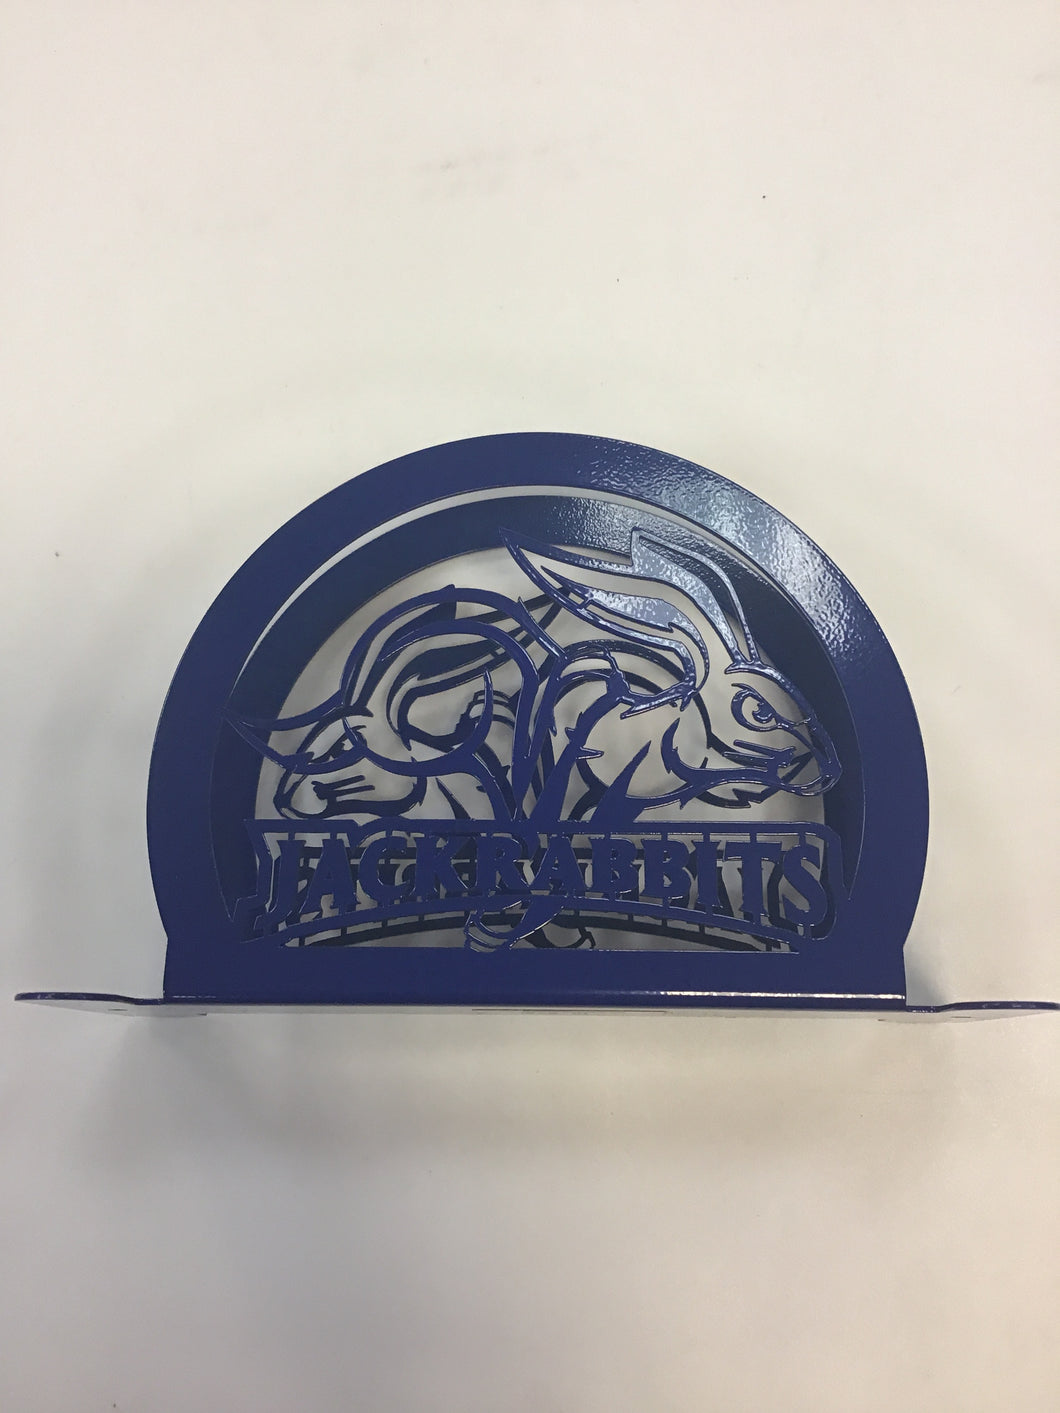 South Dakota State University Jackrabbits Napkin Holder